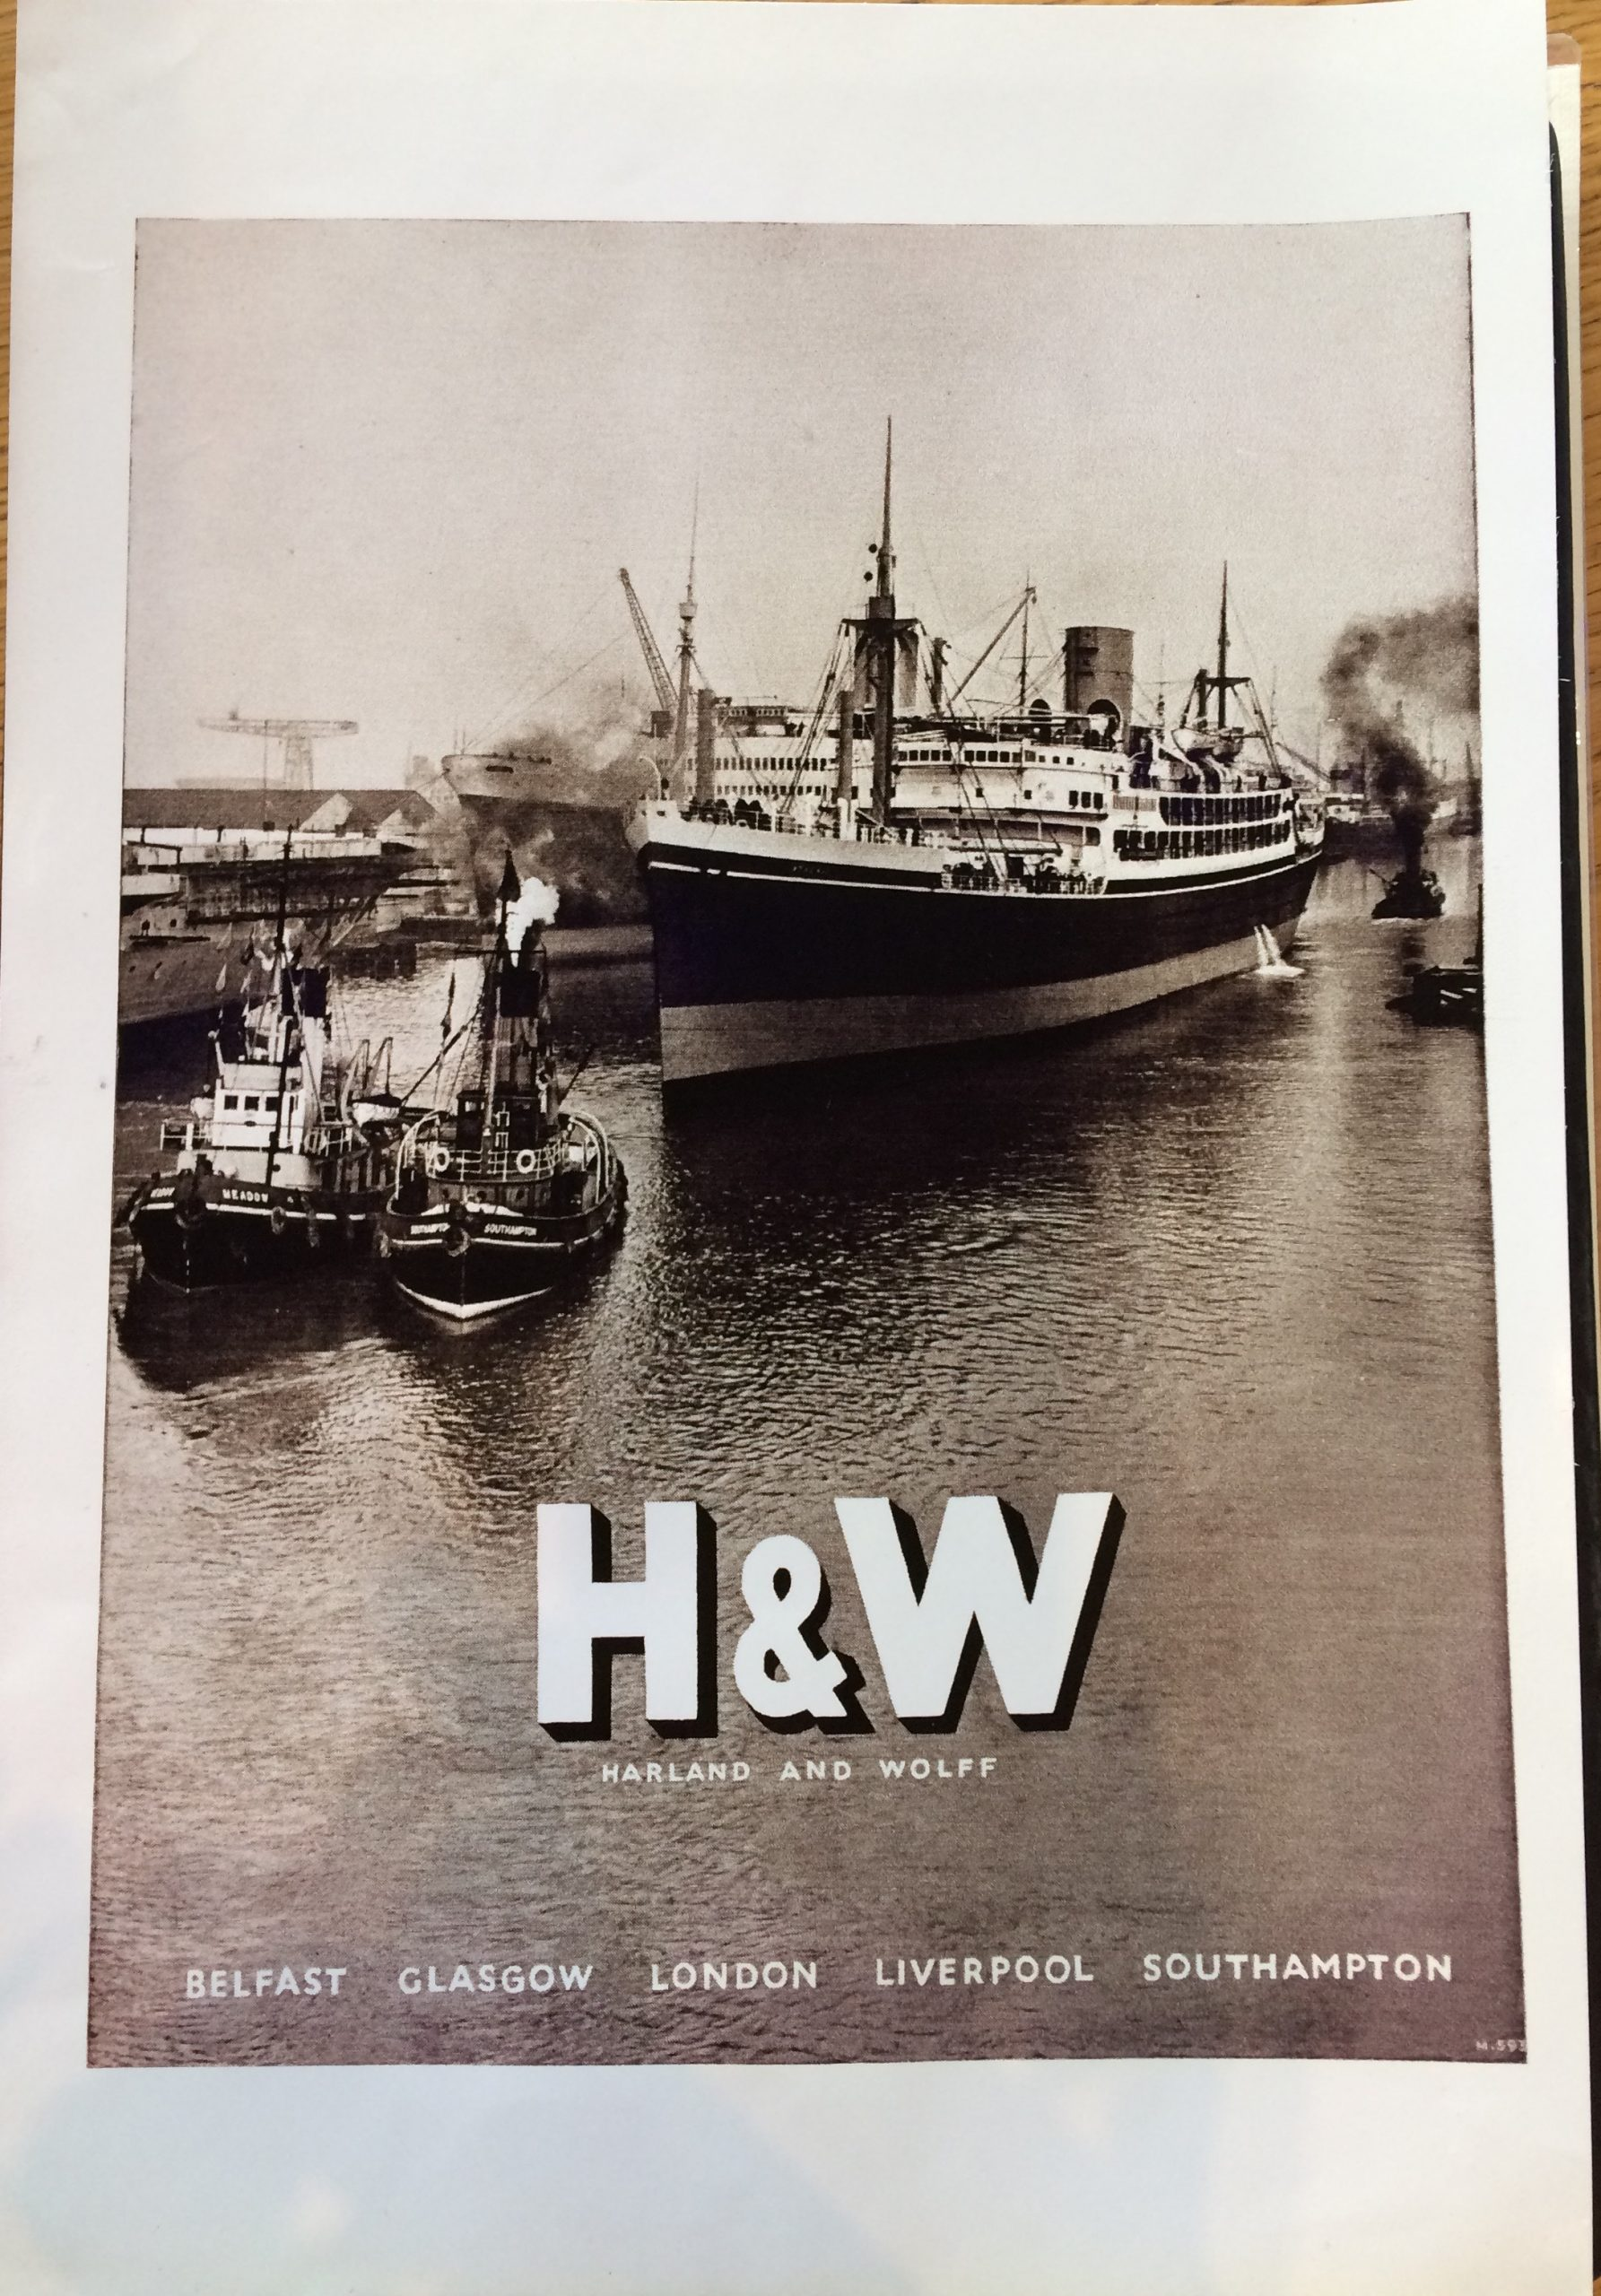 H&W Harland & Wolff Black and White Photograph